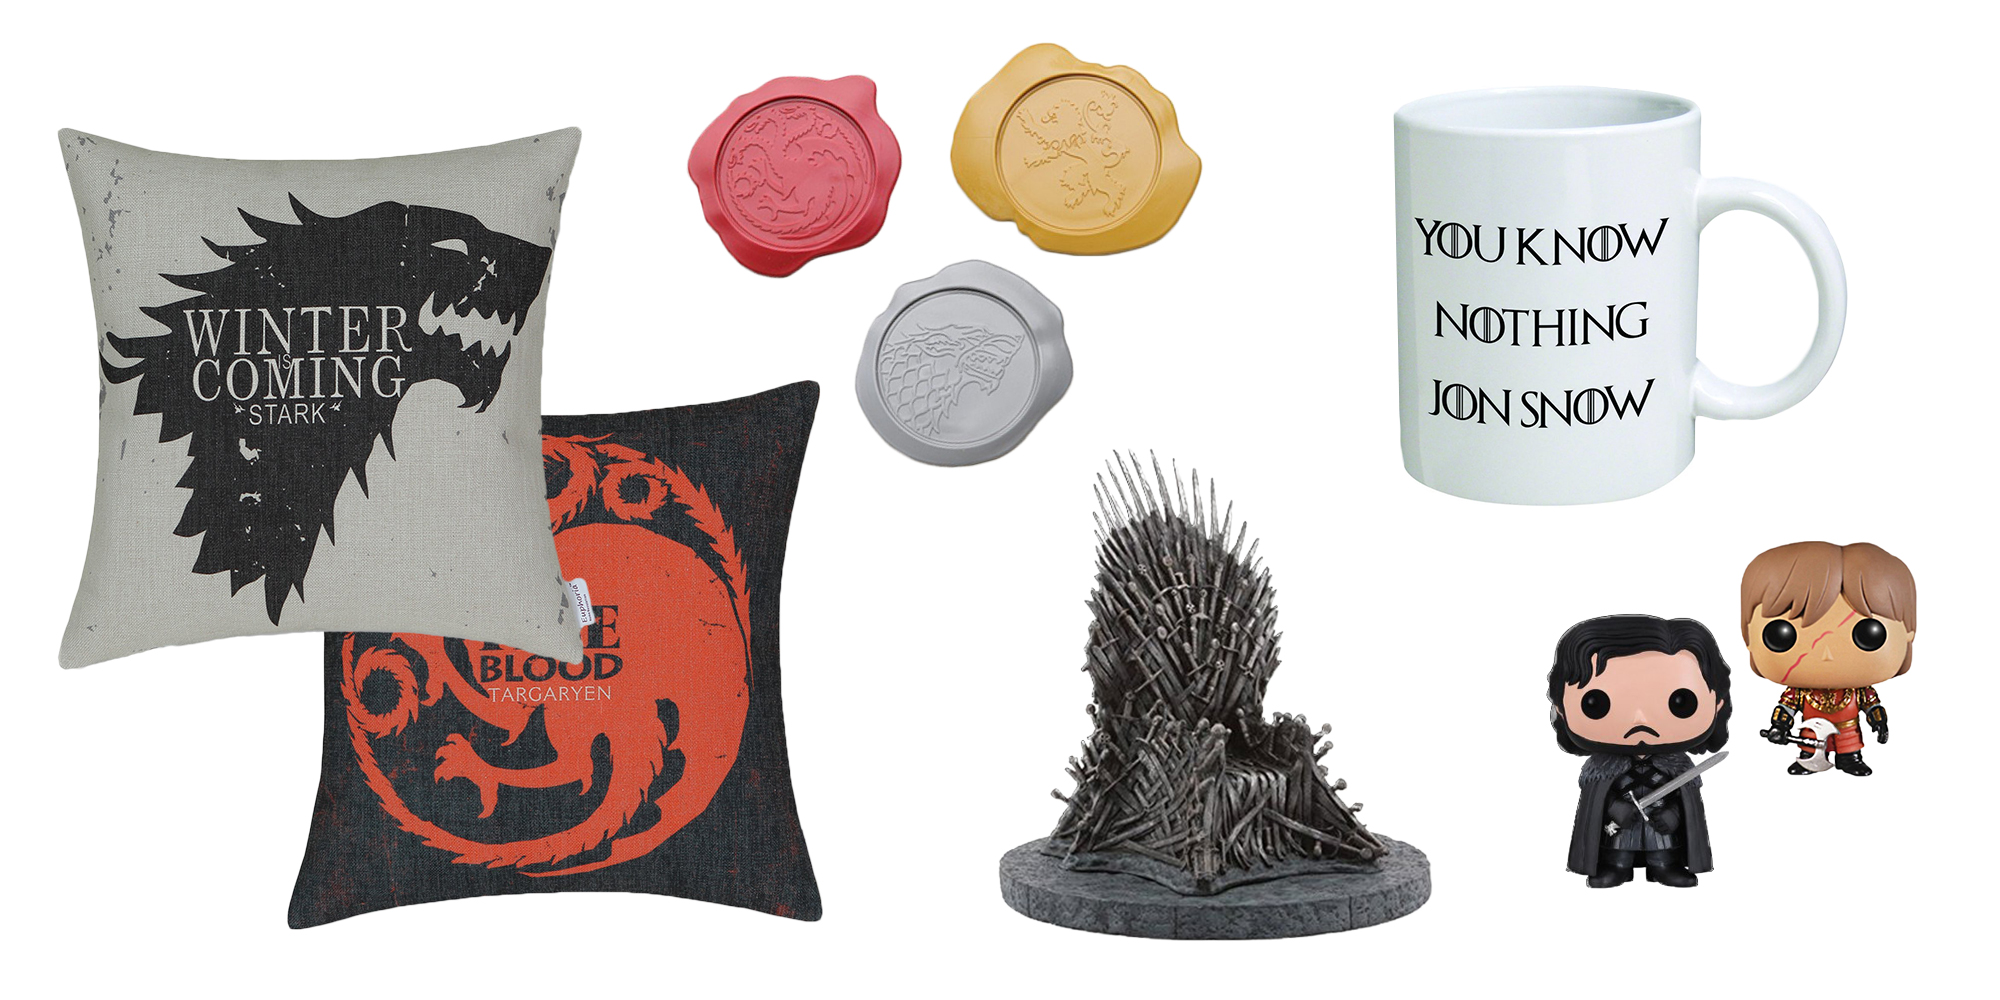 Best 39 Game Of Thrones 39 Merchandise In 2018 18 Cool 39 Game